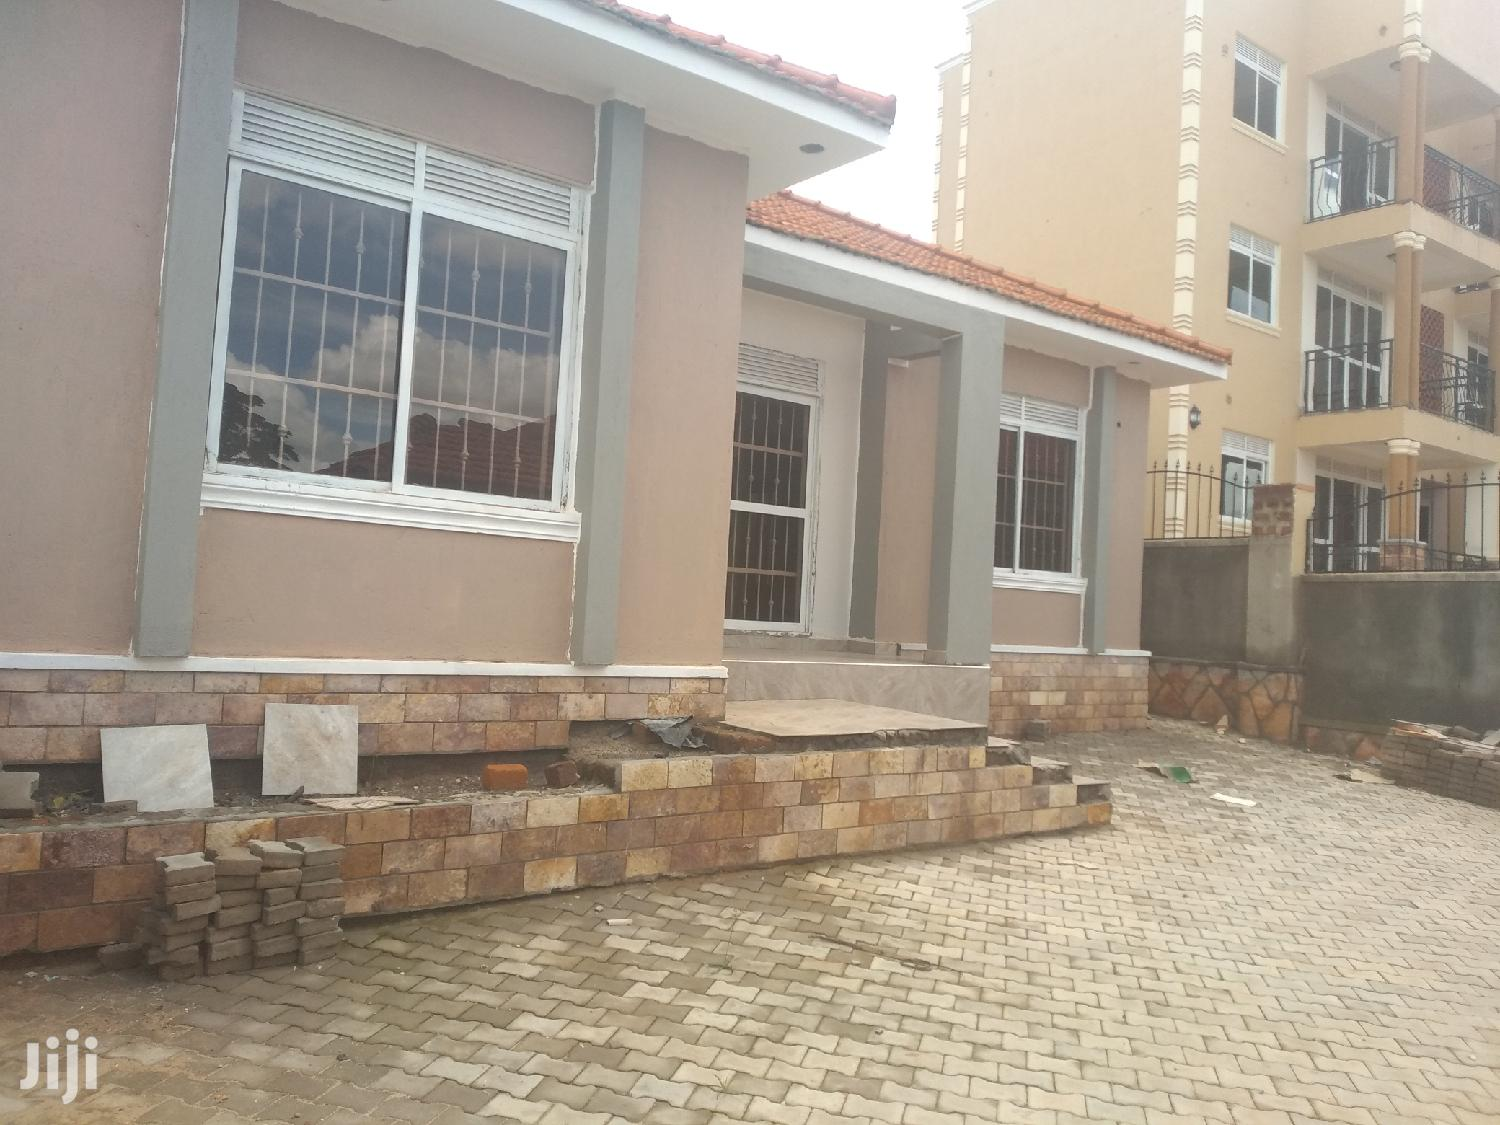 Three Bedrooms Boy's Quarter House for Sale in Kira With Ready Title